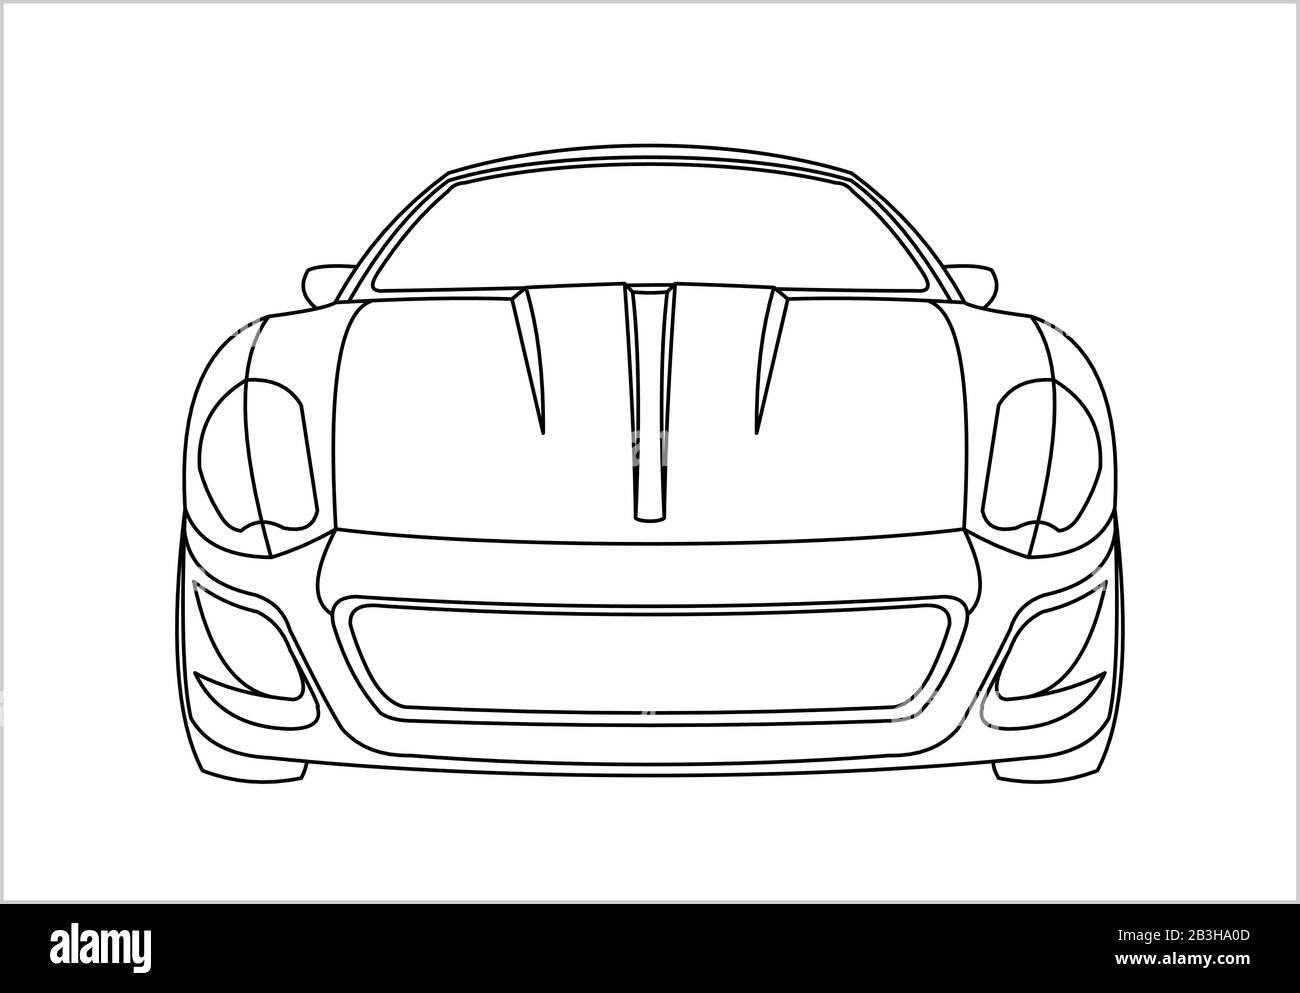 - Outline Car Coloring Book For Kids And Adults. Fast Racing Car